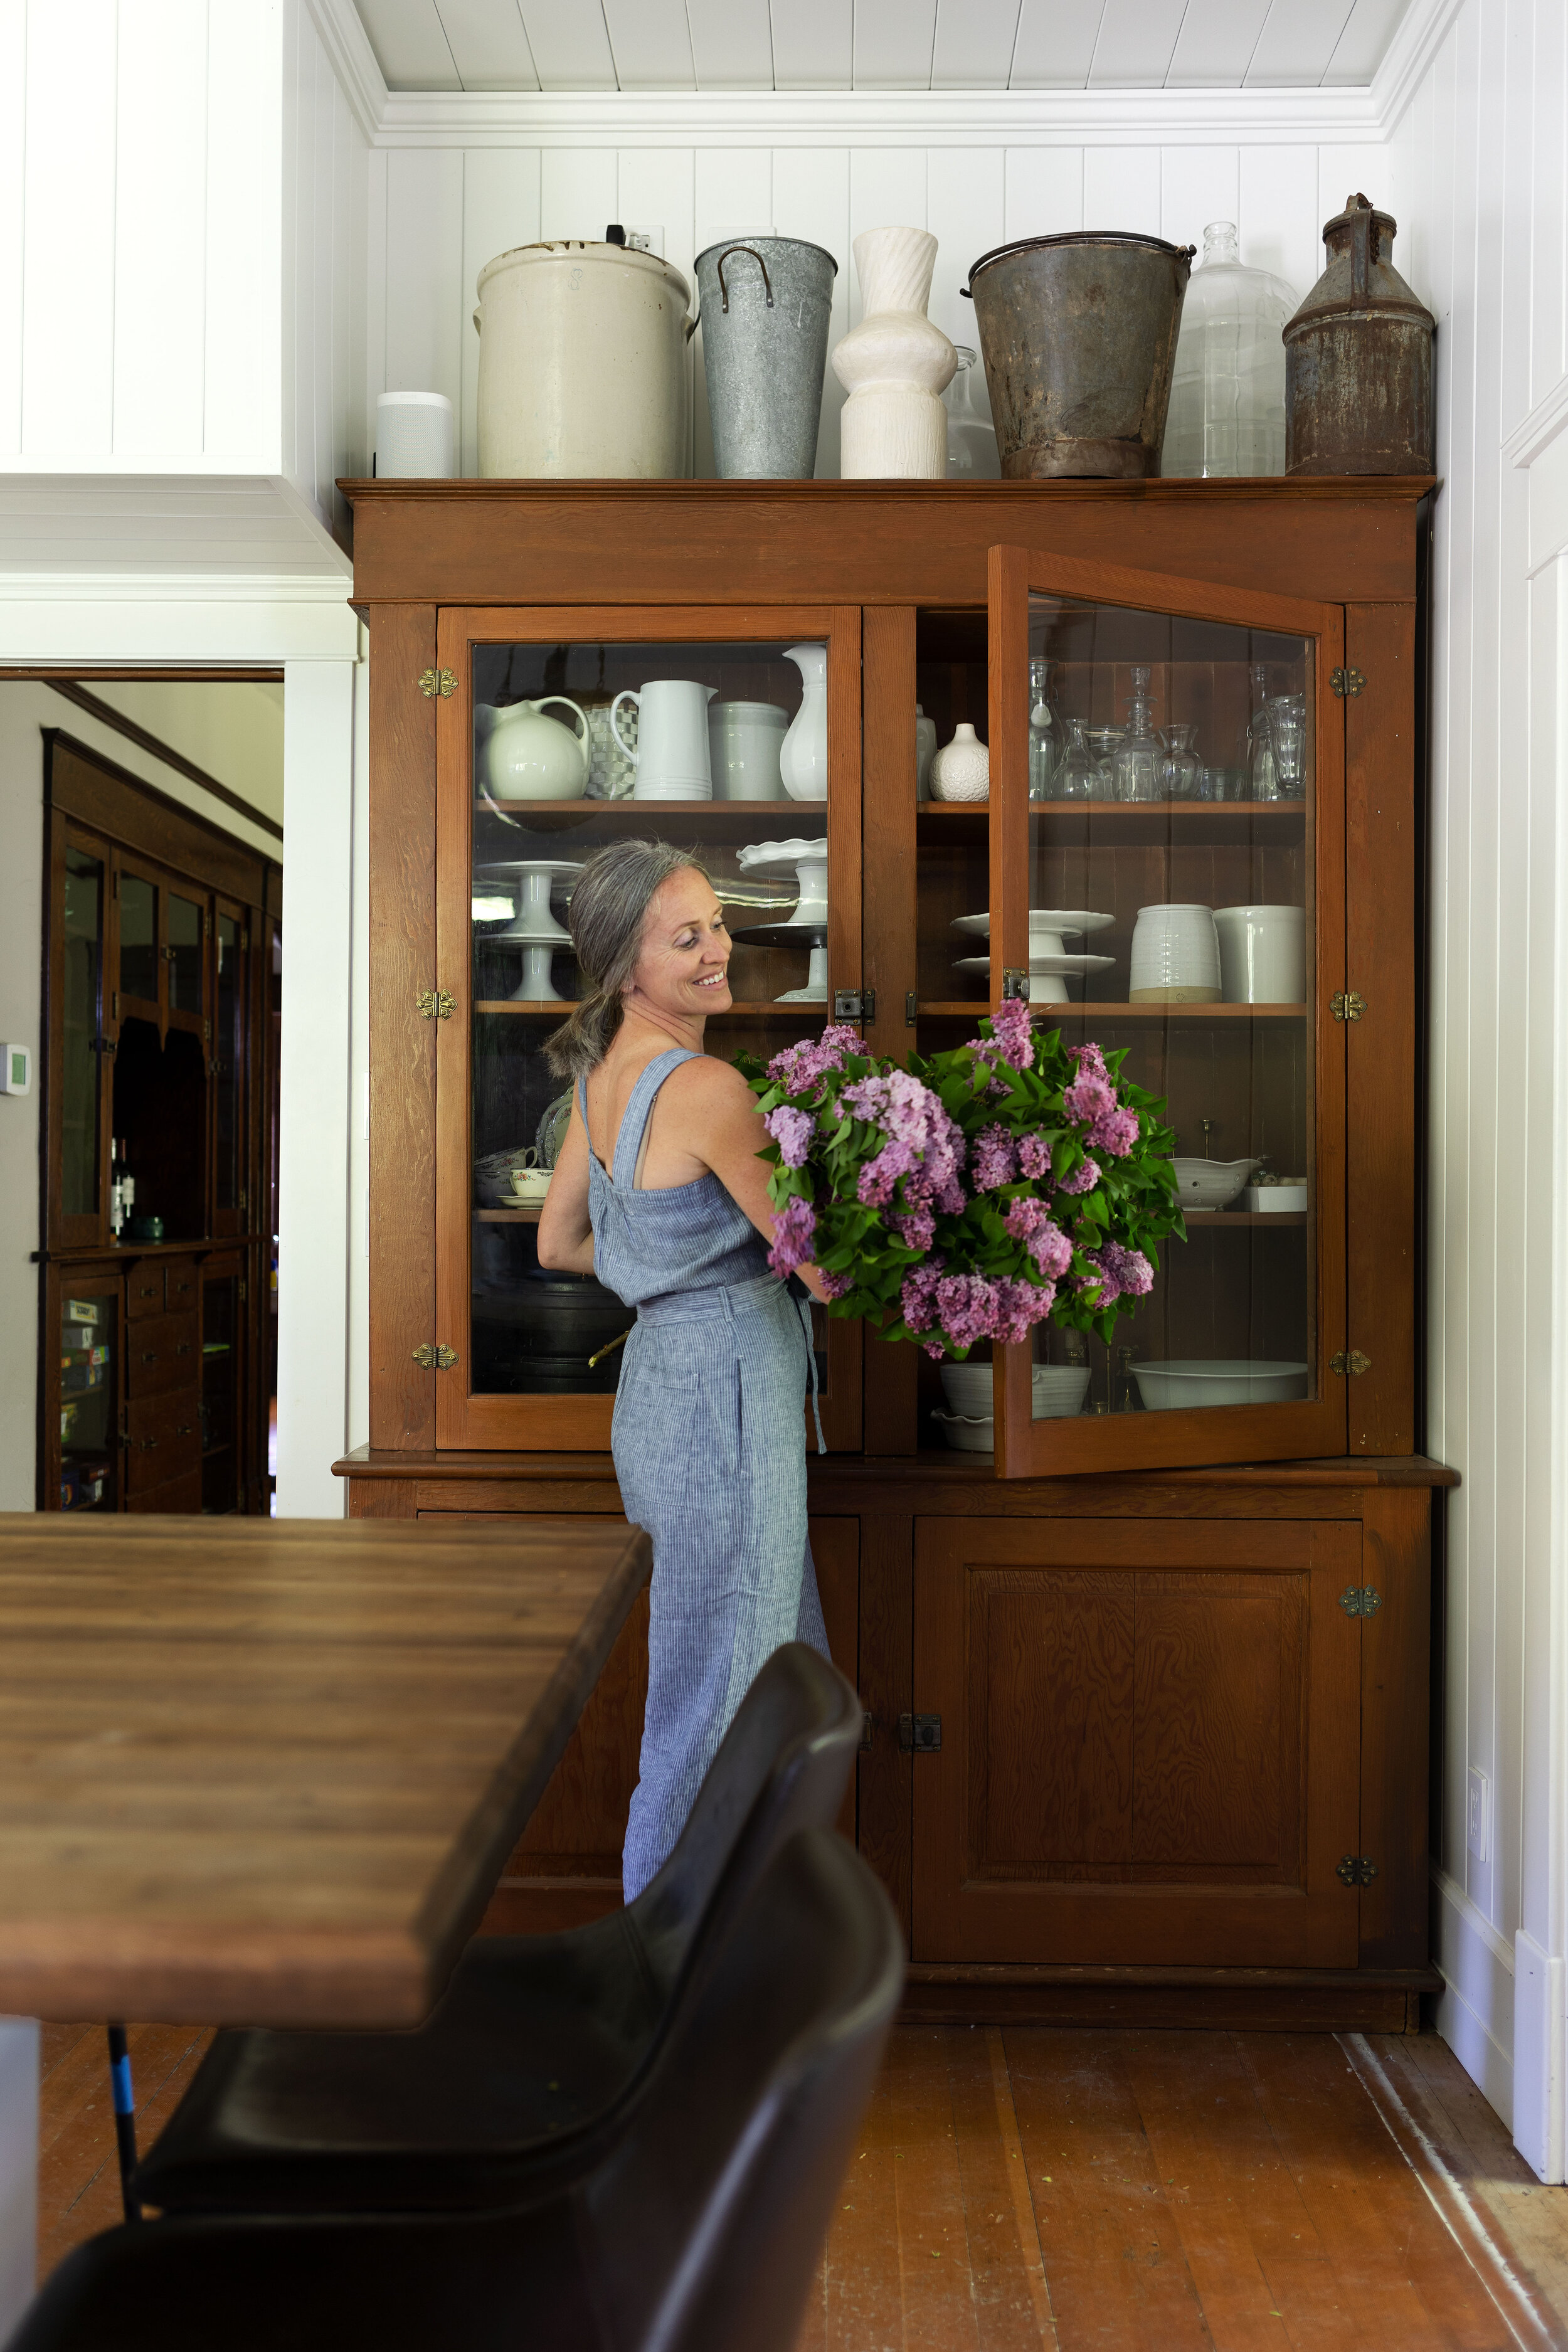 The-Grit-and-Polish---Farmhouse-Kitchen-Lilac-Blooms-2.2.jpg